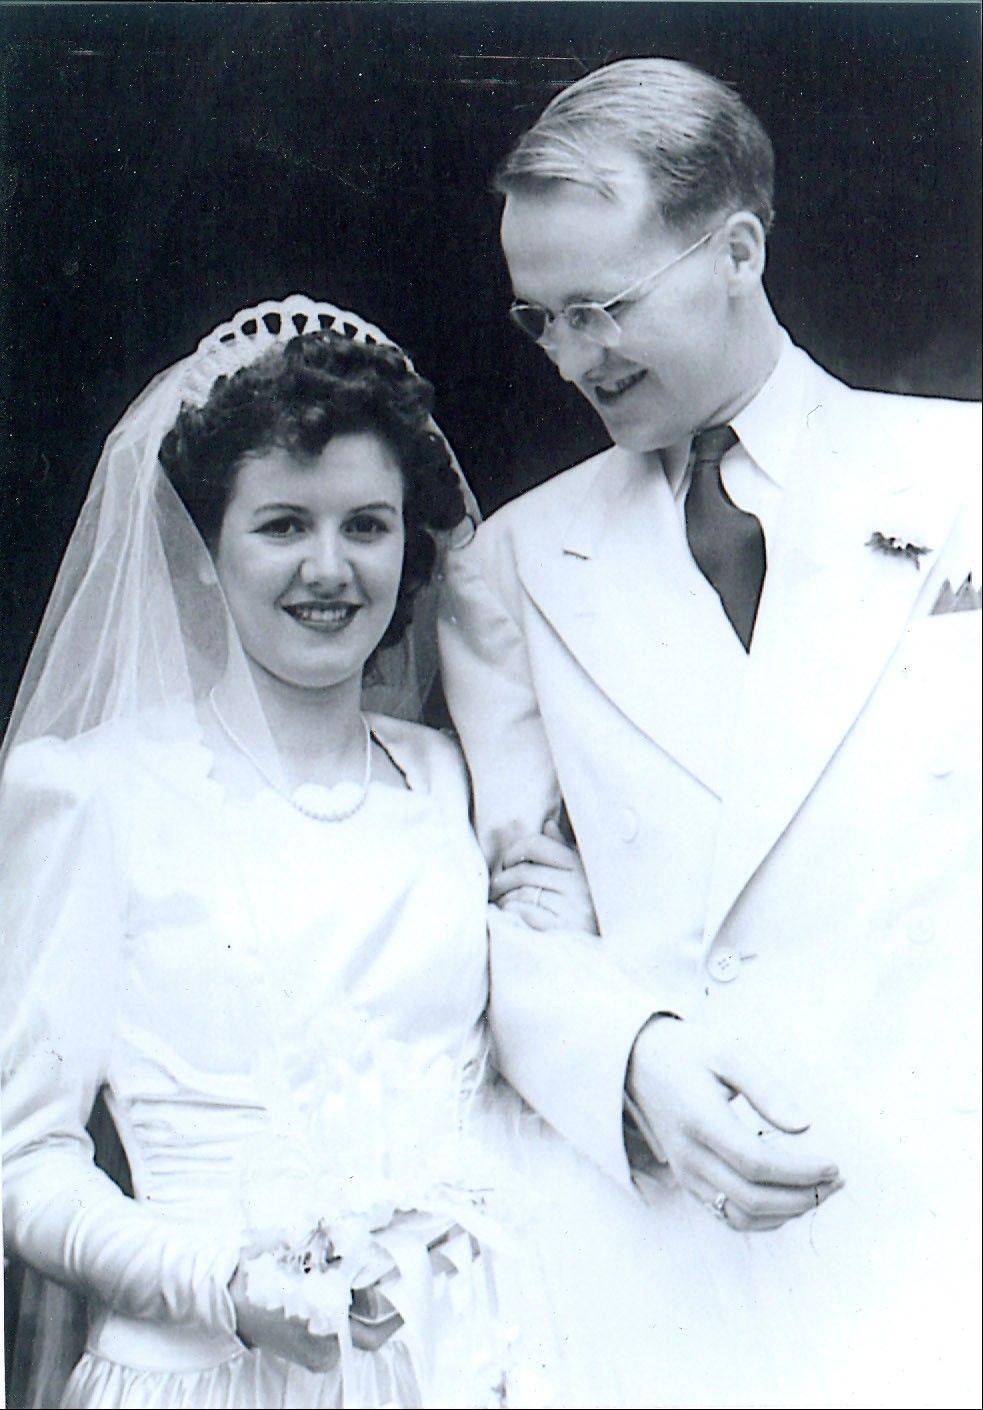 A week after Bernice and Dick McKillip were married, he was shipped out to serve in the Army during World War II.